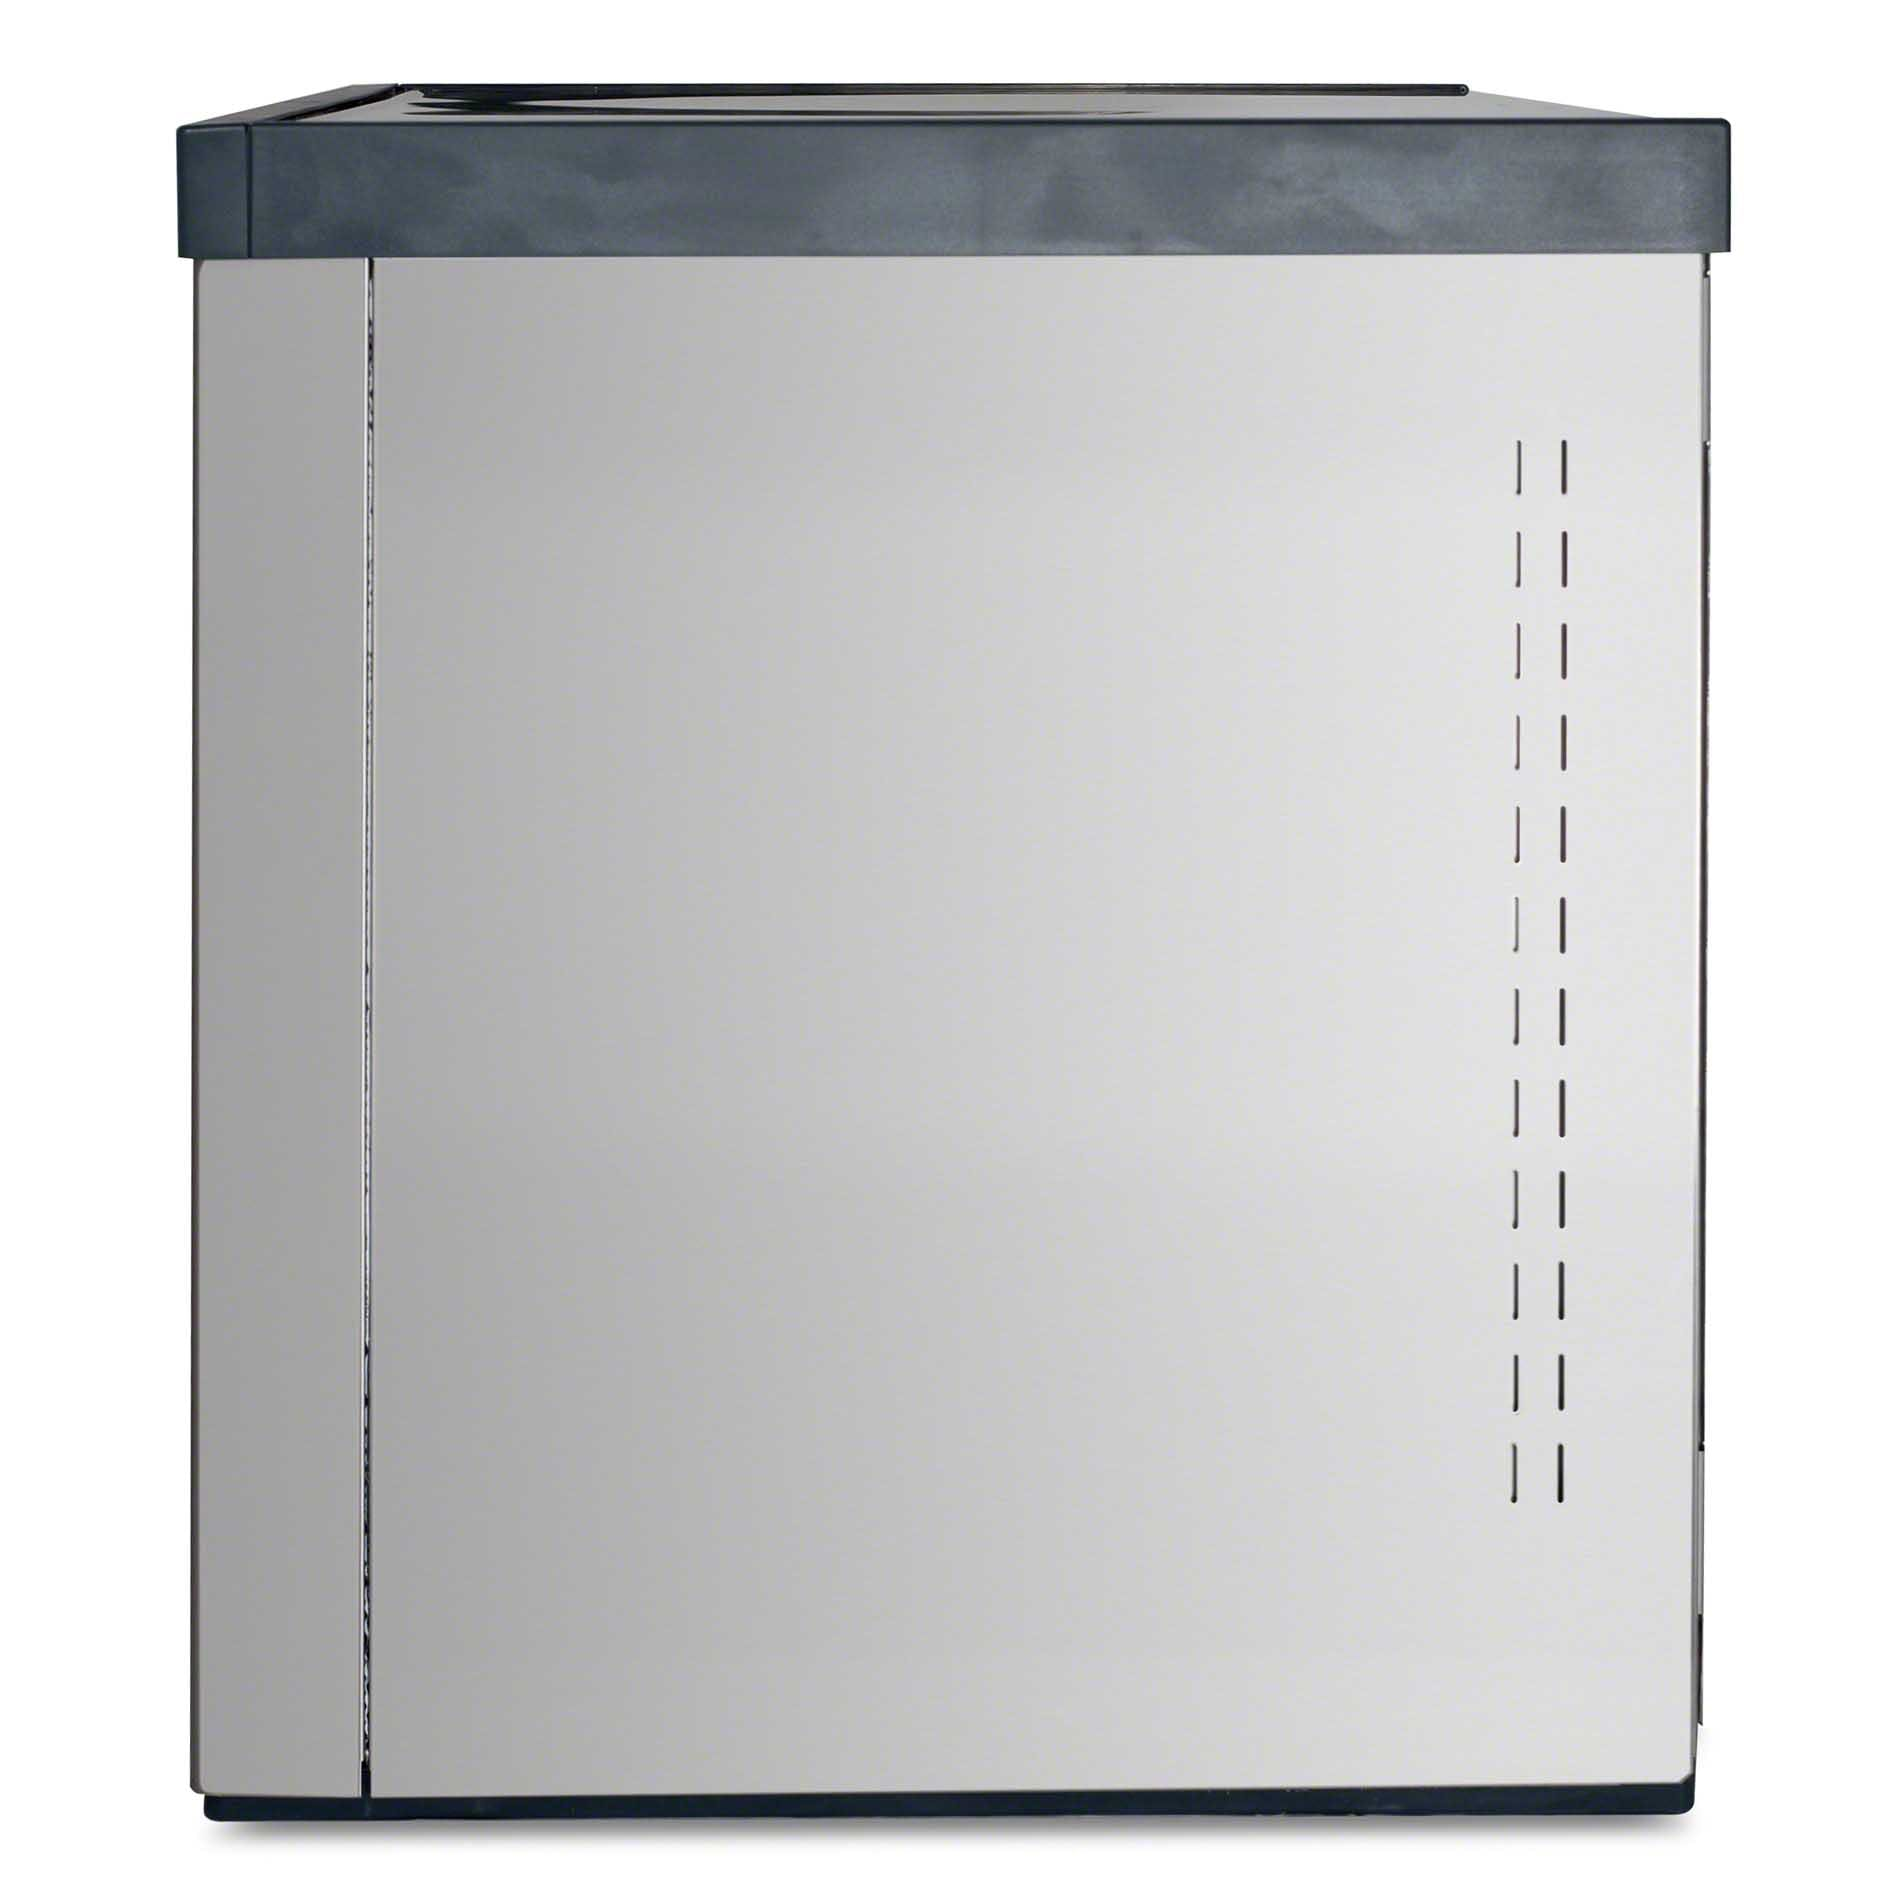 Scotsman - C0830SW-32A 924 lb Half Size Cube Ice Machine - Prodigy Series - sold by Food Service Warehouse